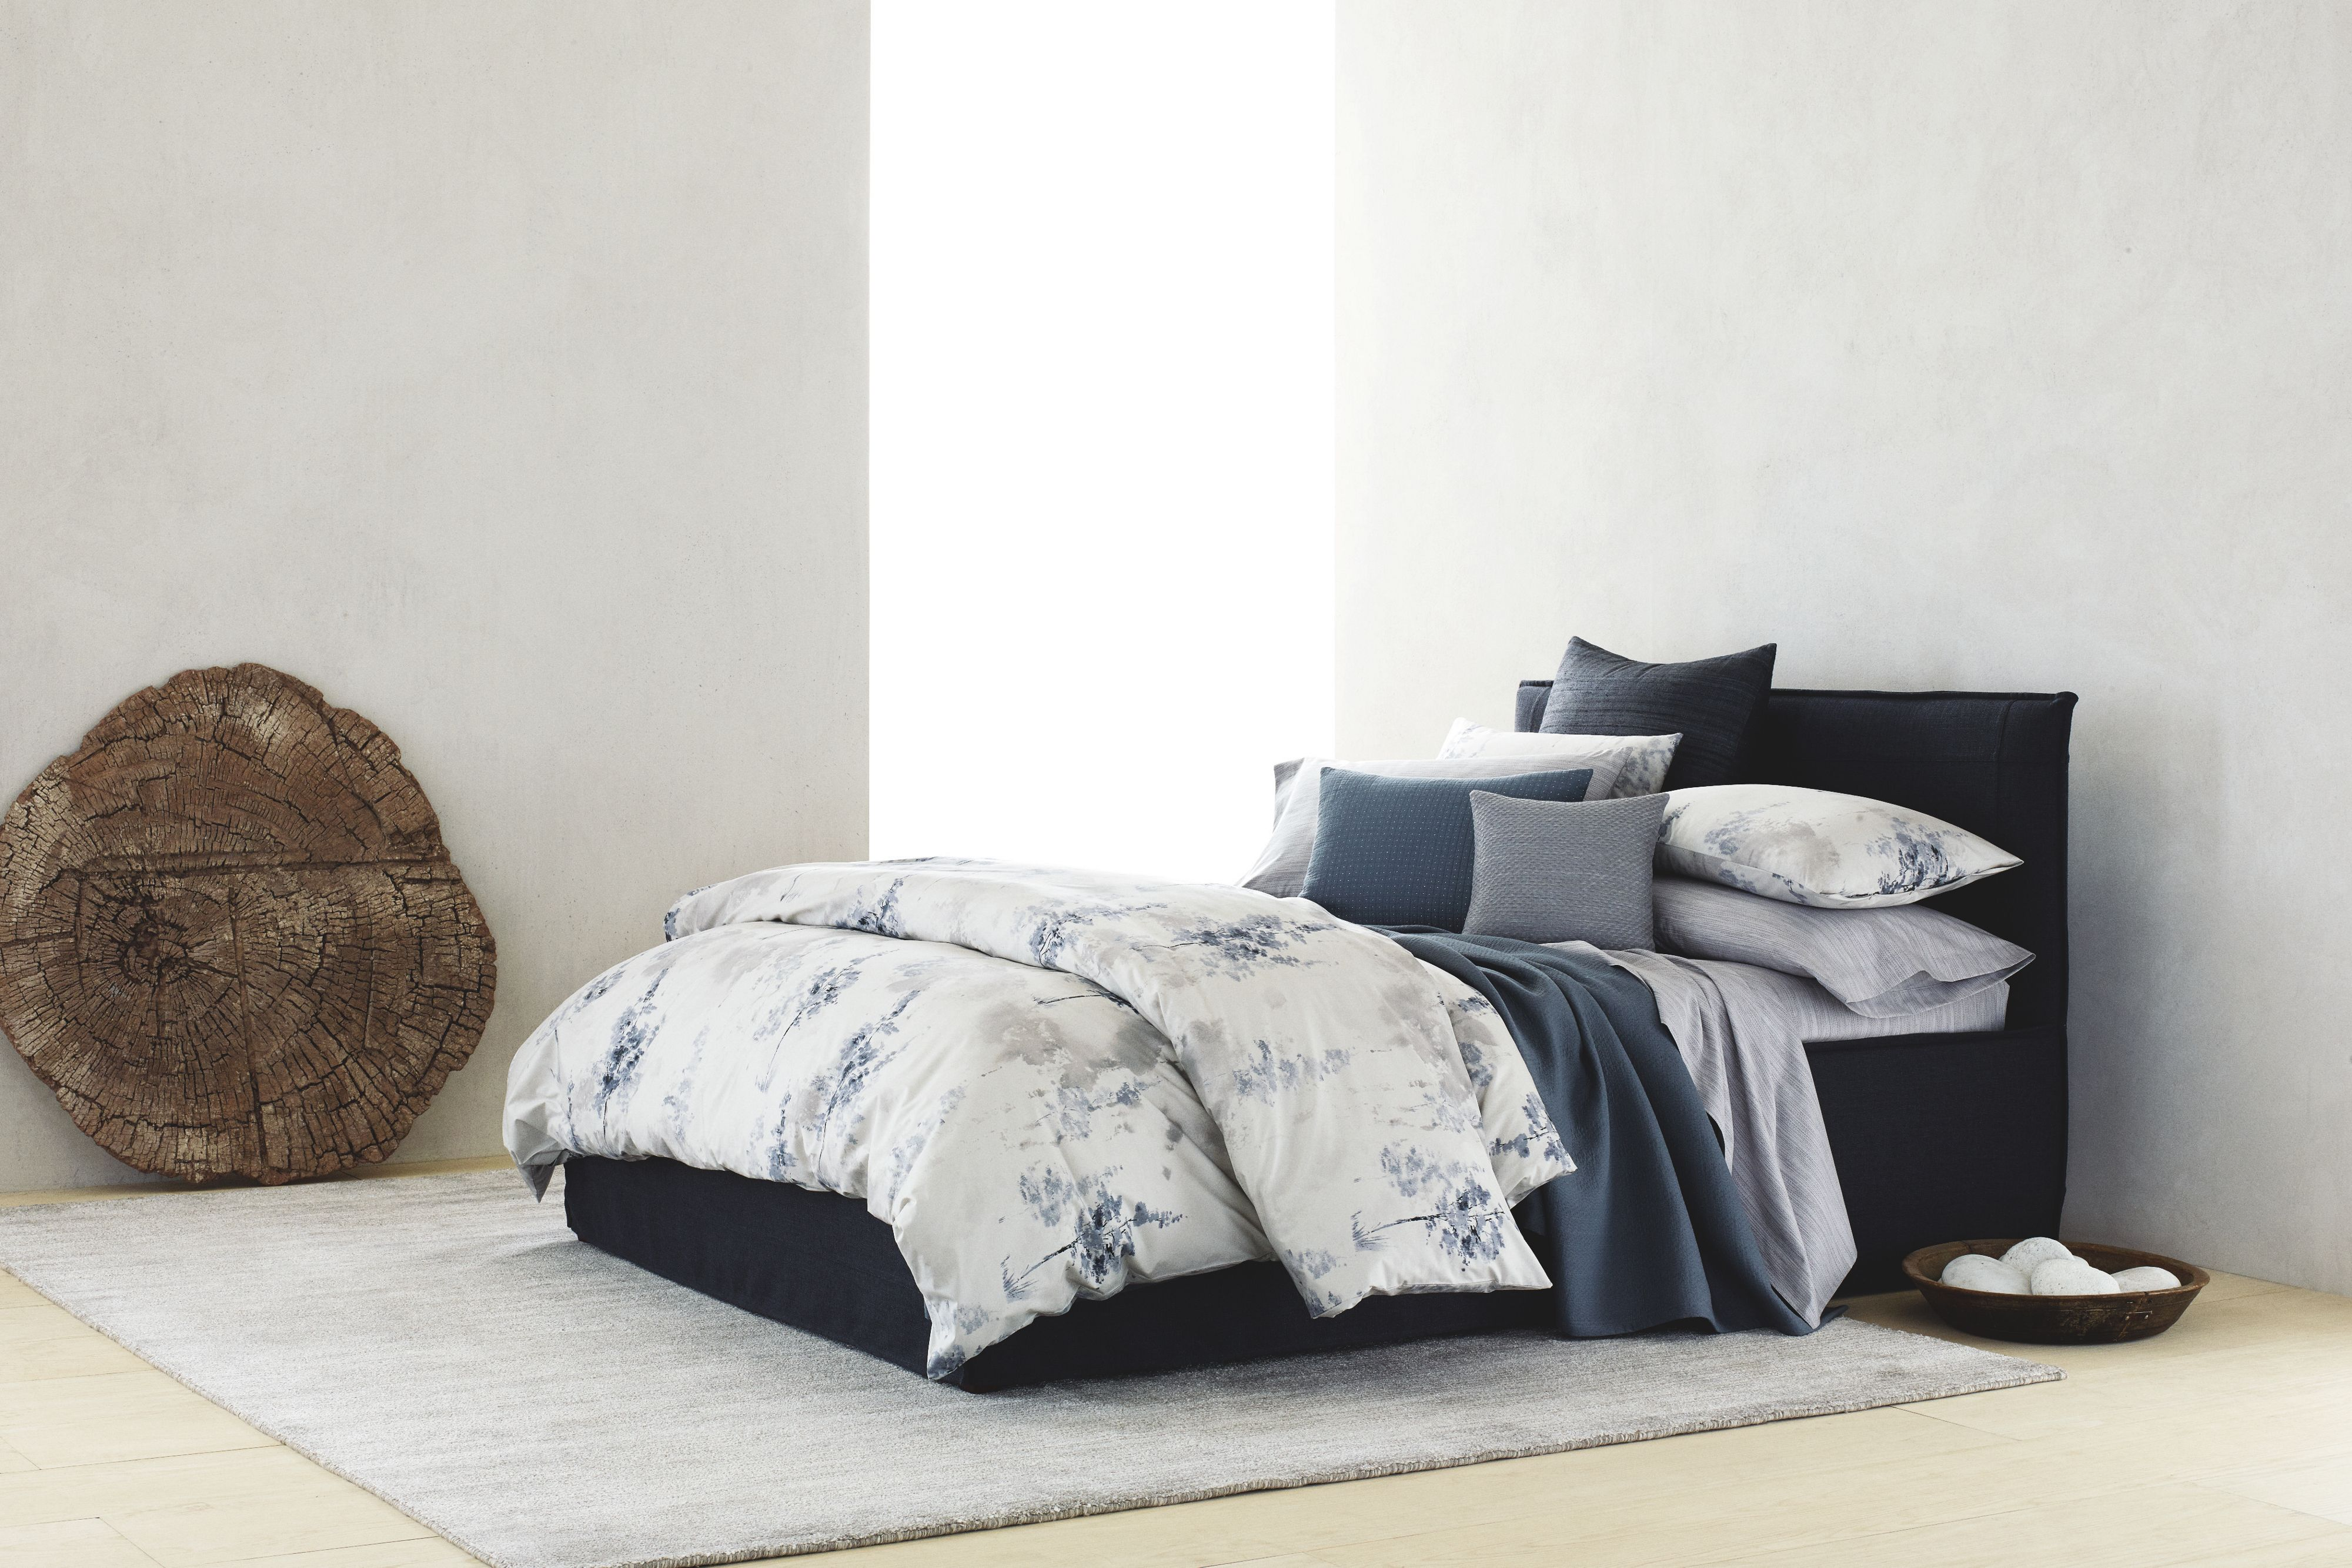 motive with klein comforter grey bedding calvin bed system bedroom lilac white for new design beautiful fresh